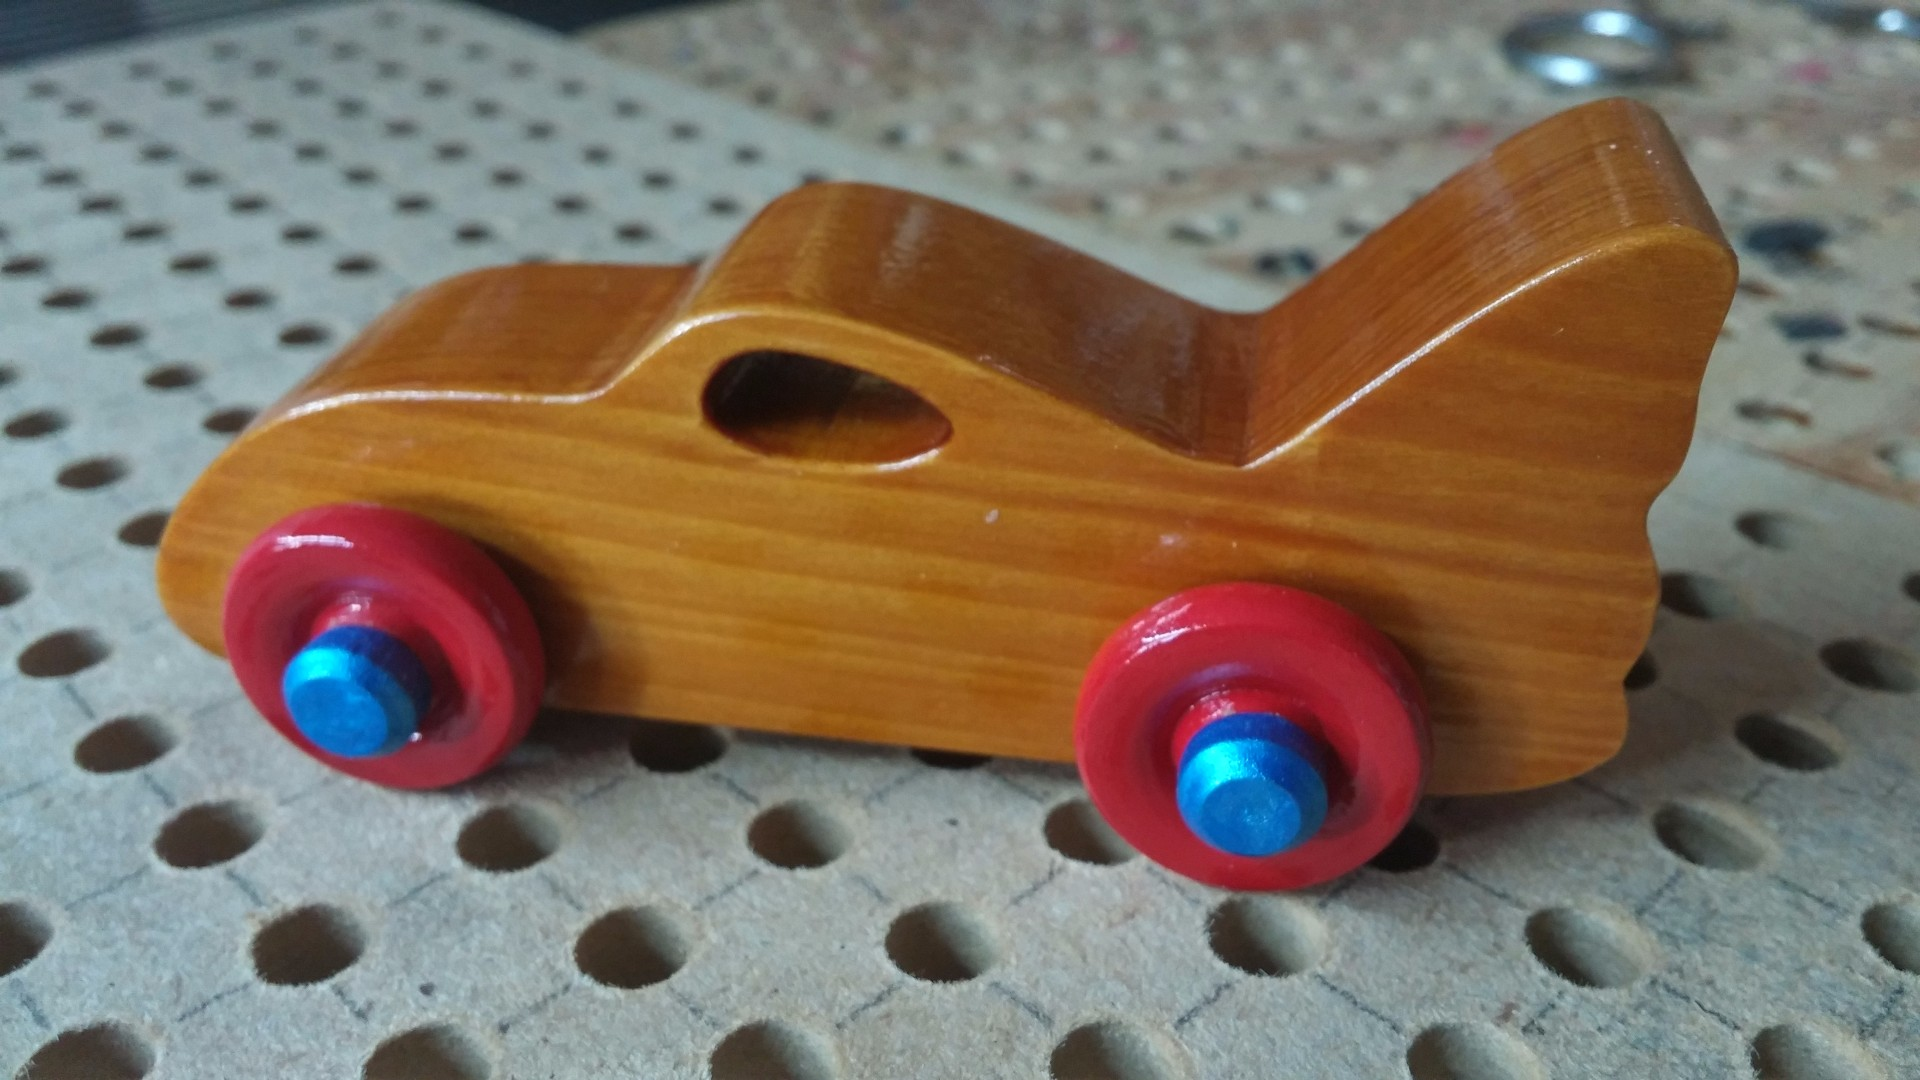 2017-08-05 14.28.19 Wooden Toy Car Play Pal - Bat Car - Shellac Red Wheels Blue Hubs.jpg